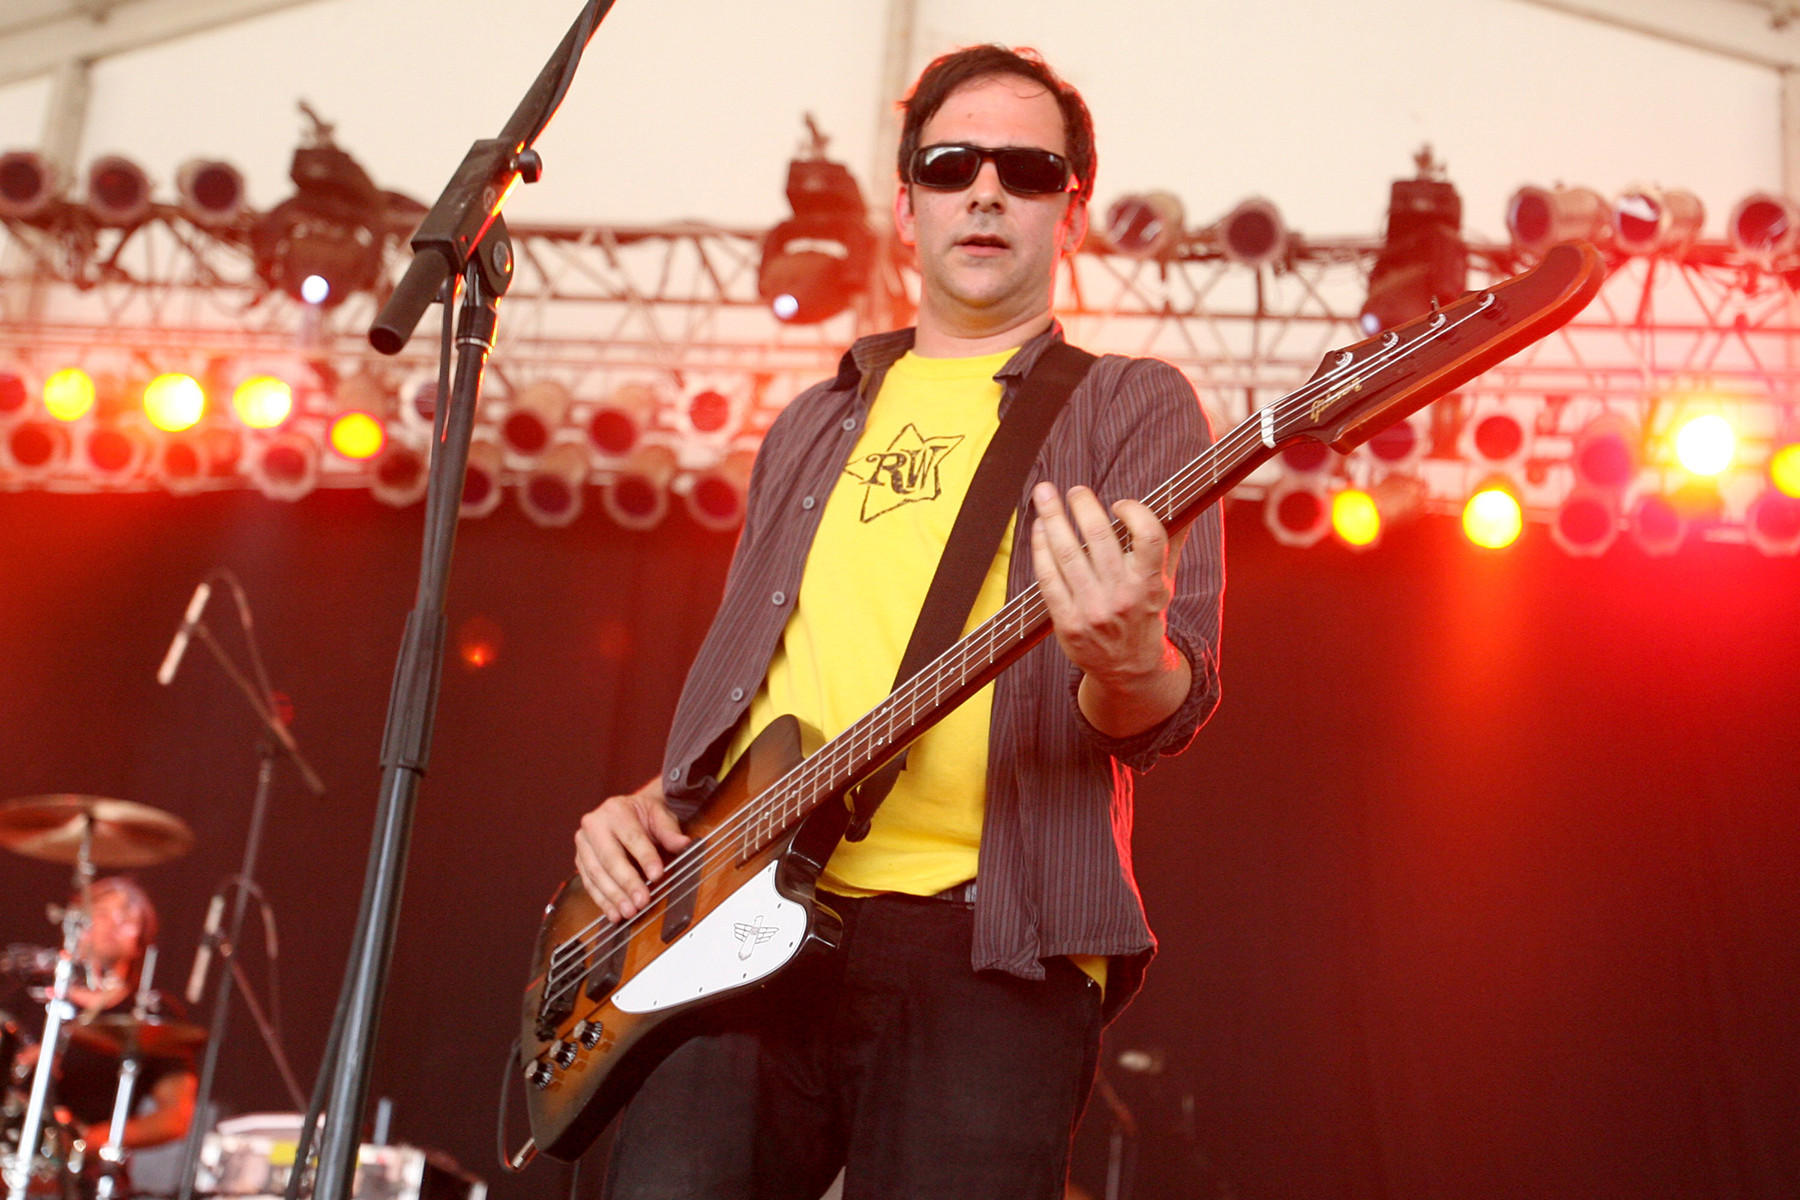 Adam Schlesinger playing bass while performing with Fountains of Wayne.